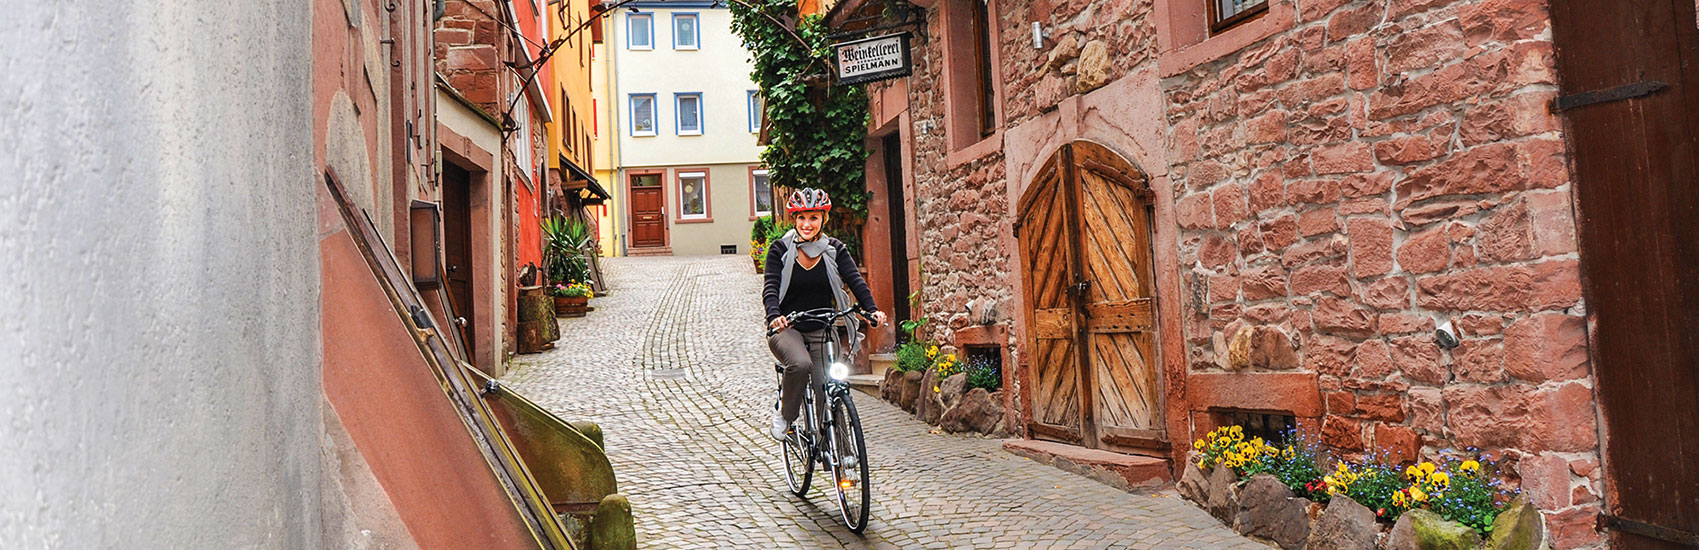 Special Savings on European River Cruises with AmaWaterways 4